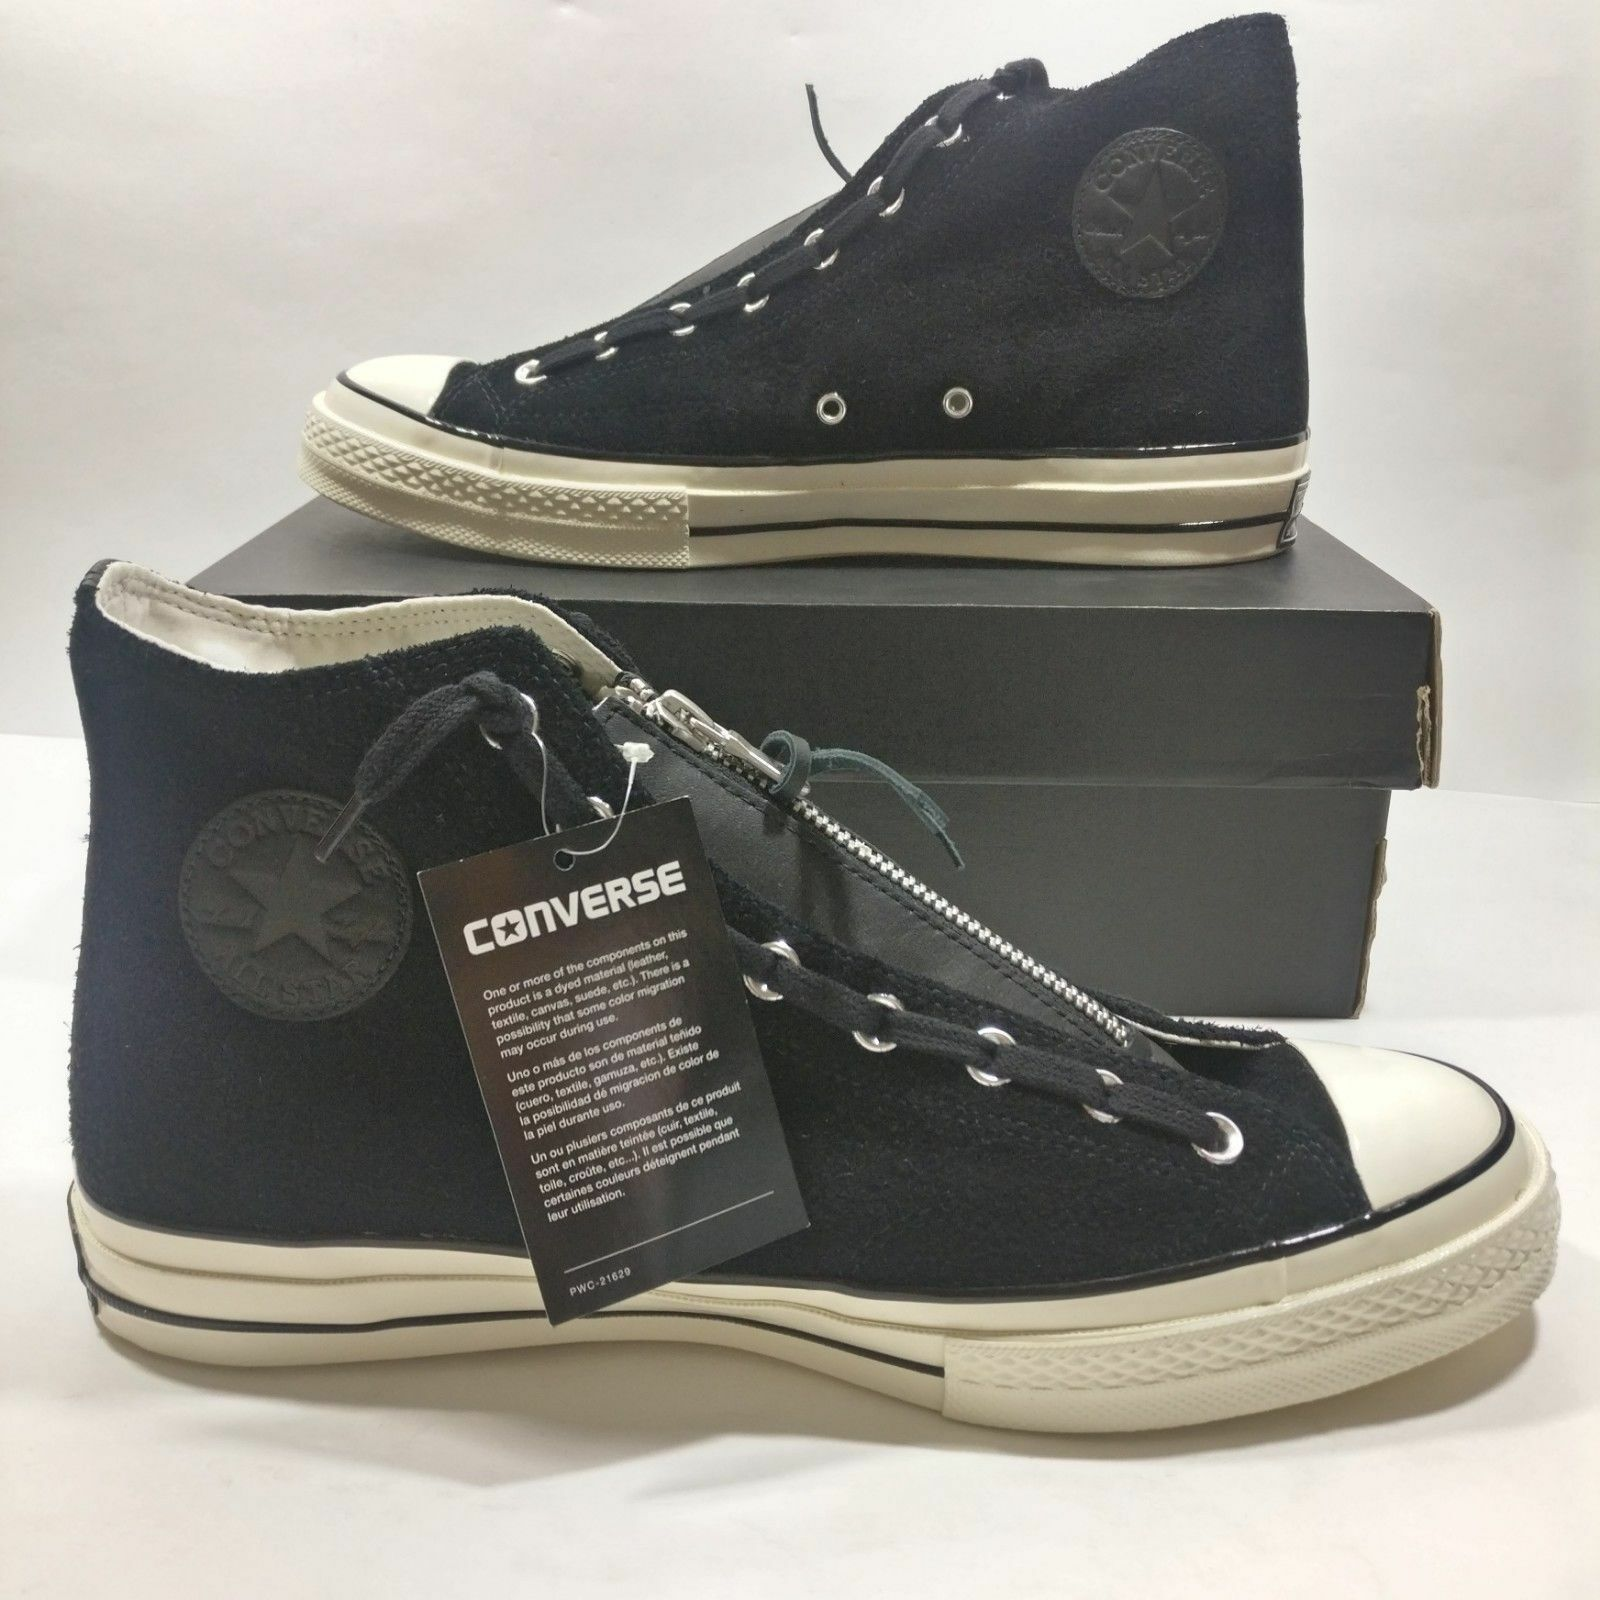 hommes Converse Chuck Taylor All Star Zip High noir blanc Chaussures Multi